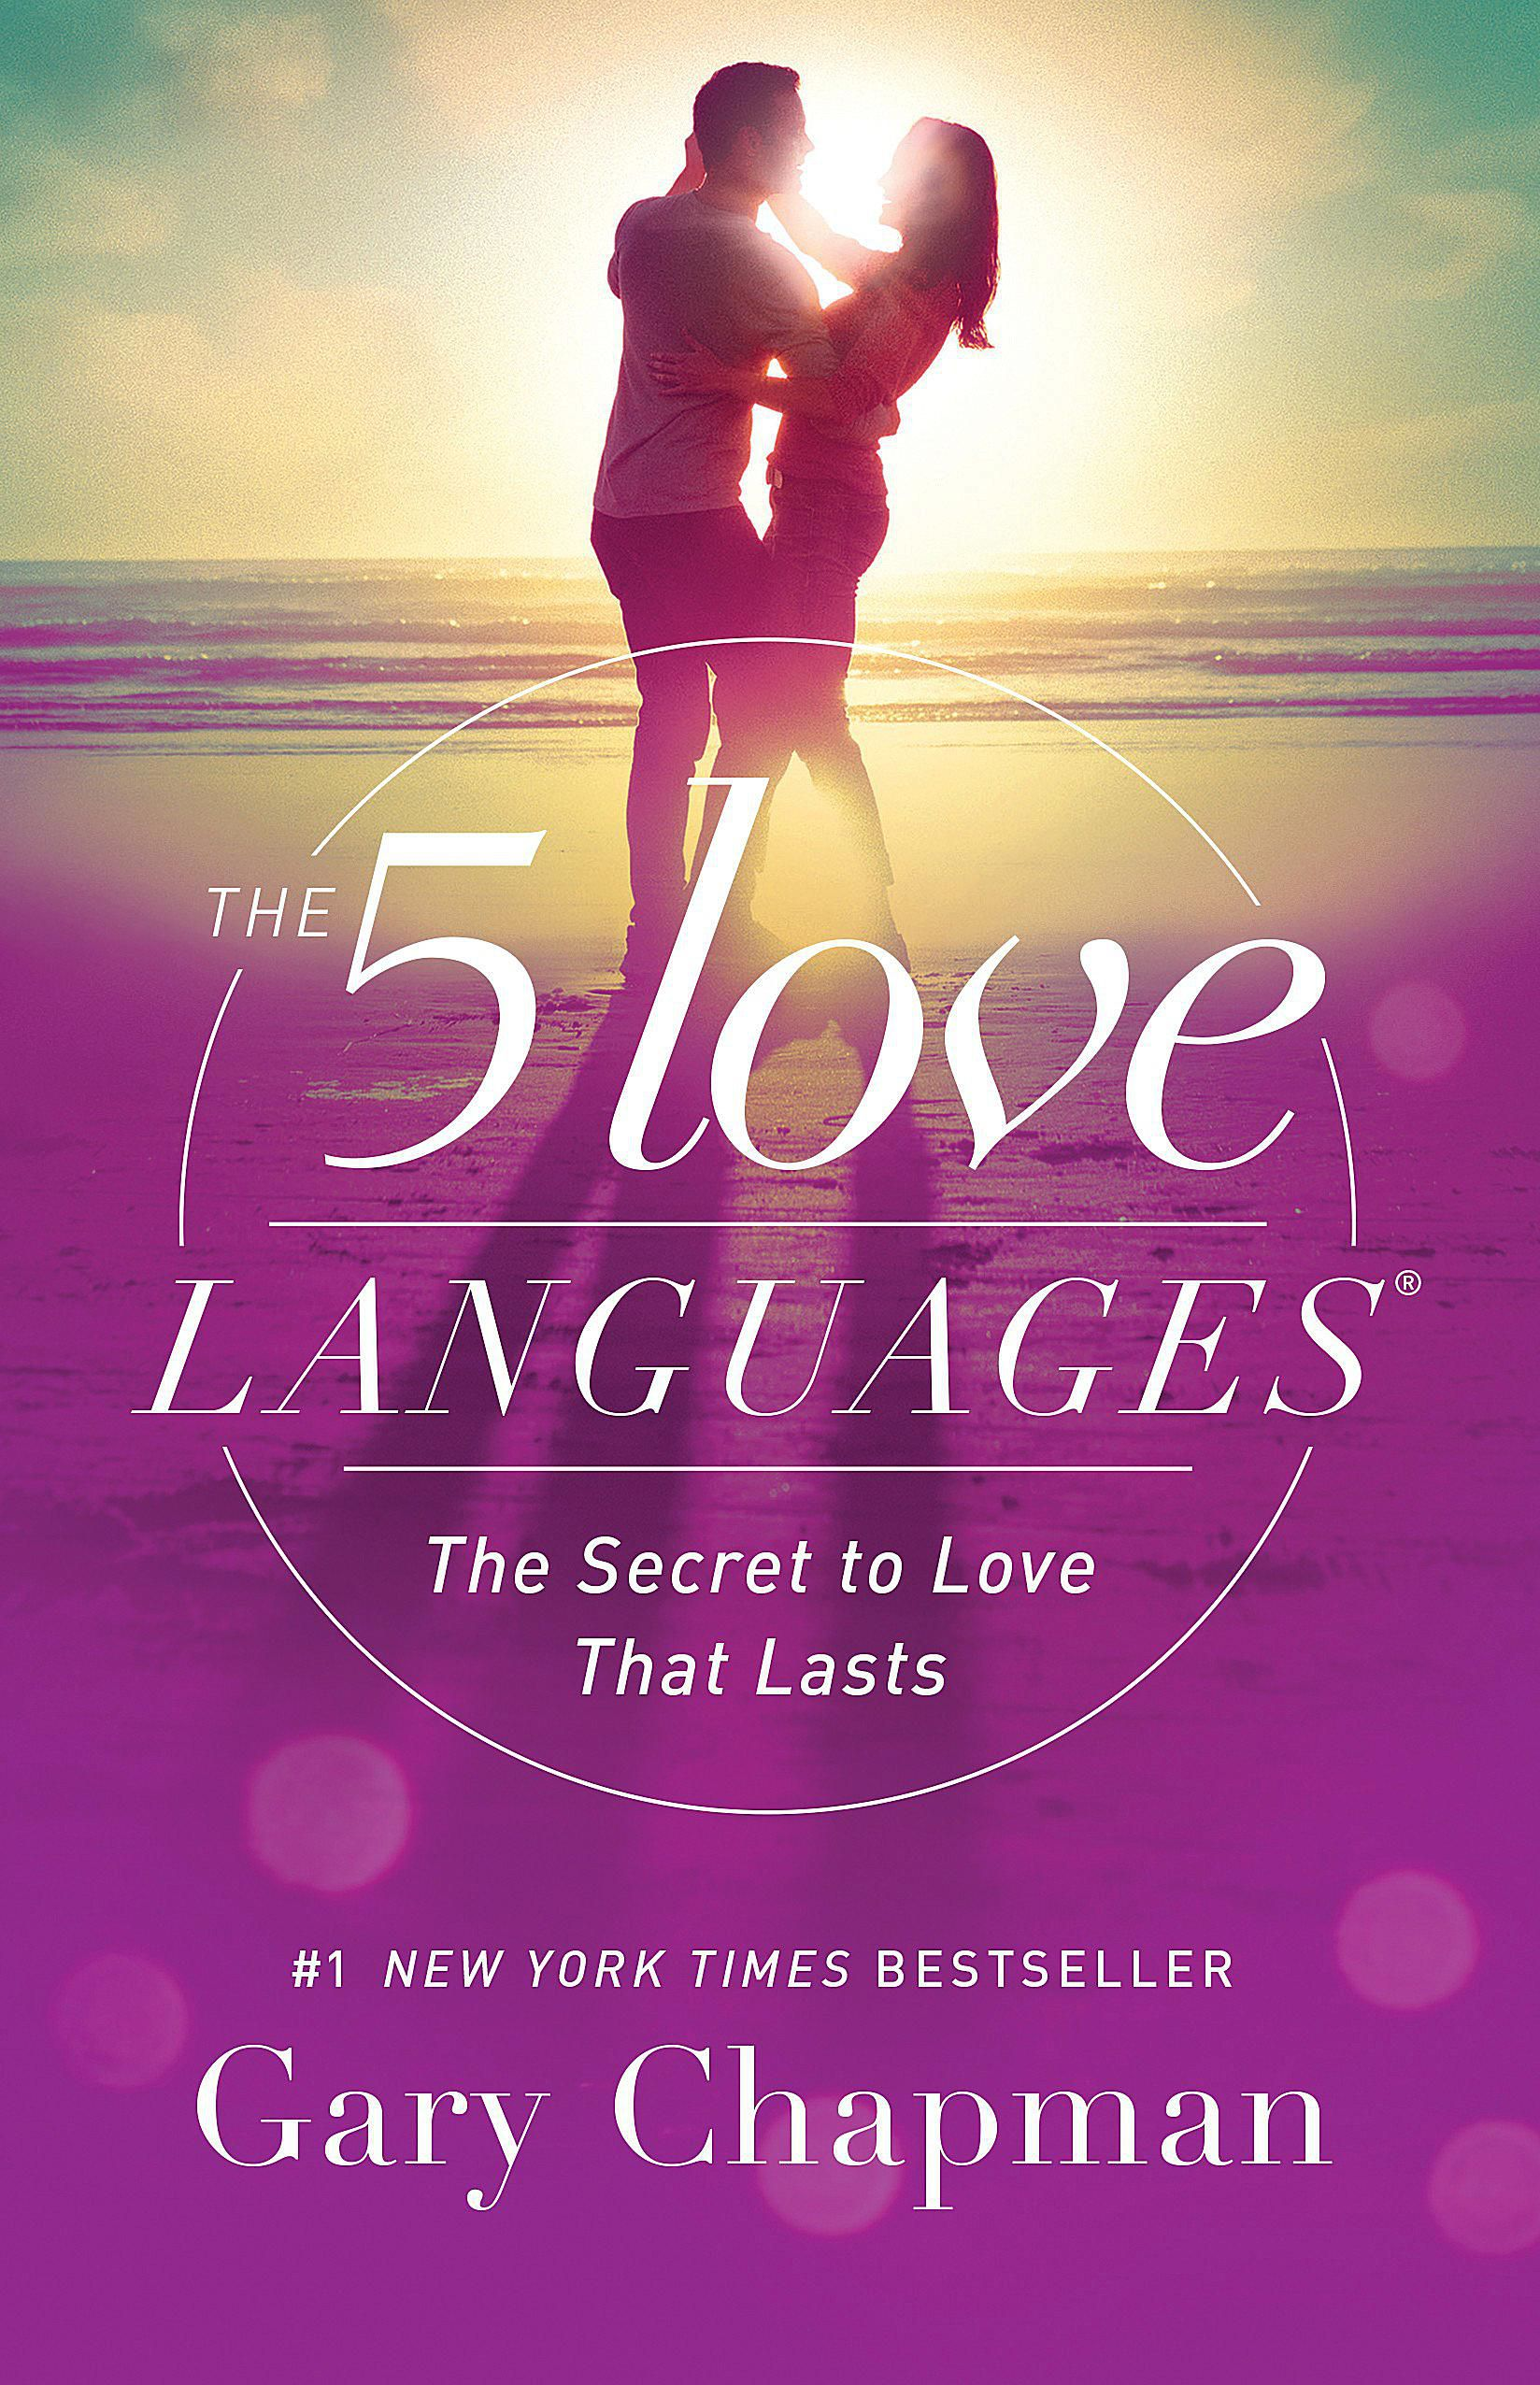 Ways of Showing Words of Affirmation Love Language